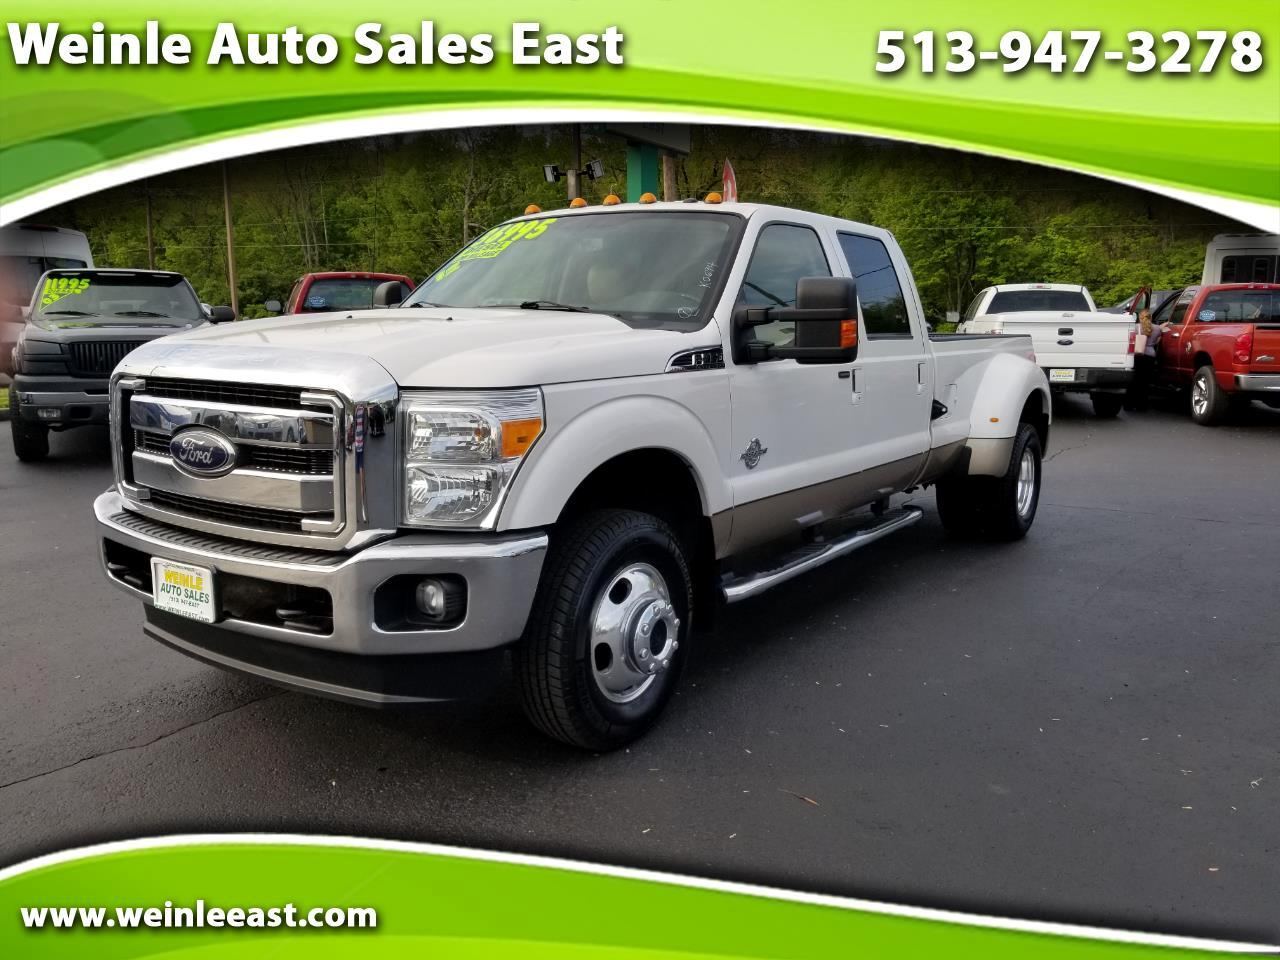 2012 Ford Super Duty F-350 DRW 4X4 Crew Cab Lariat Dually